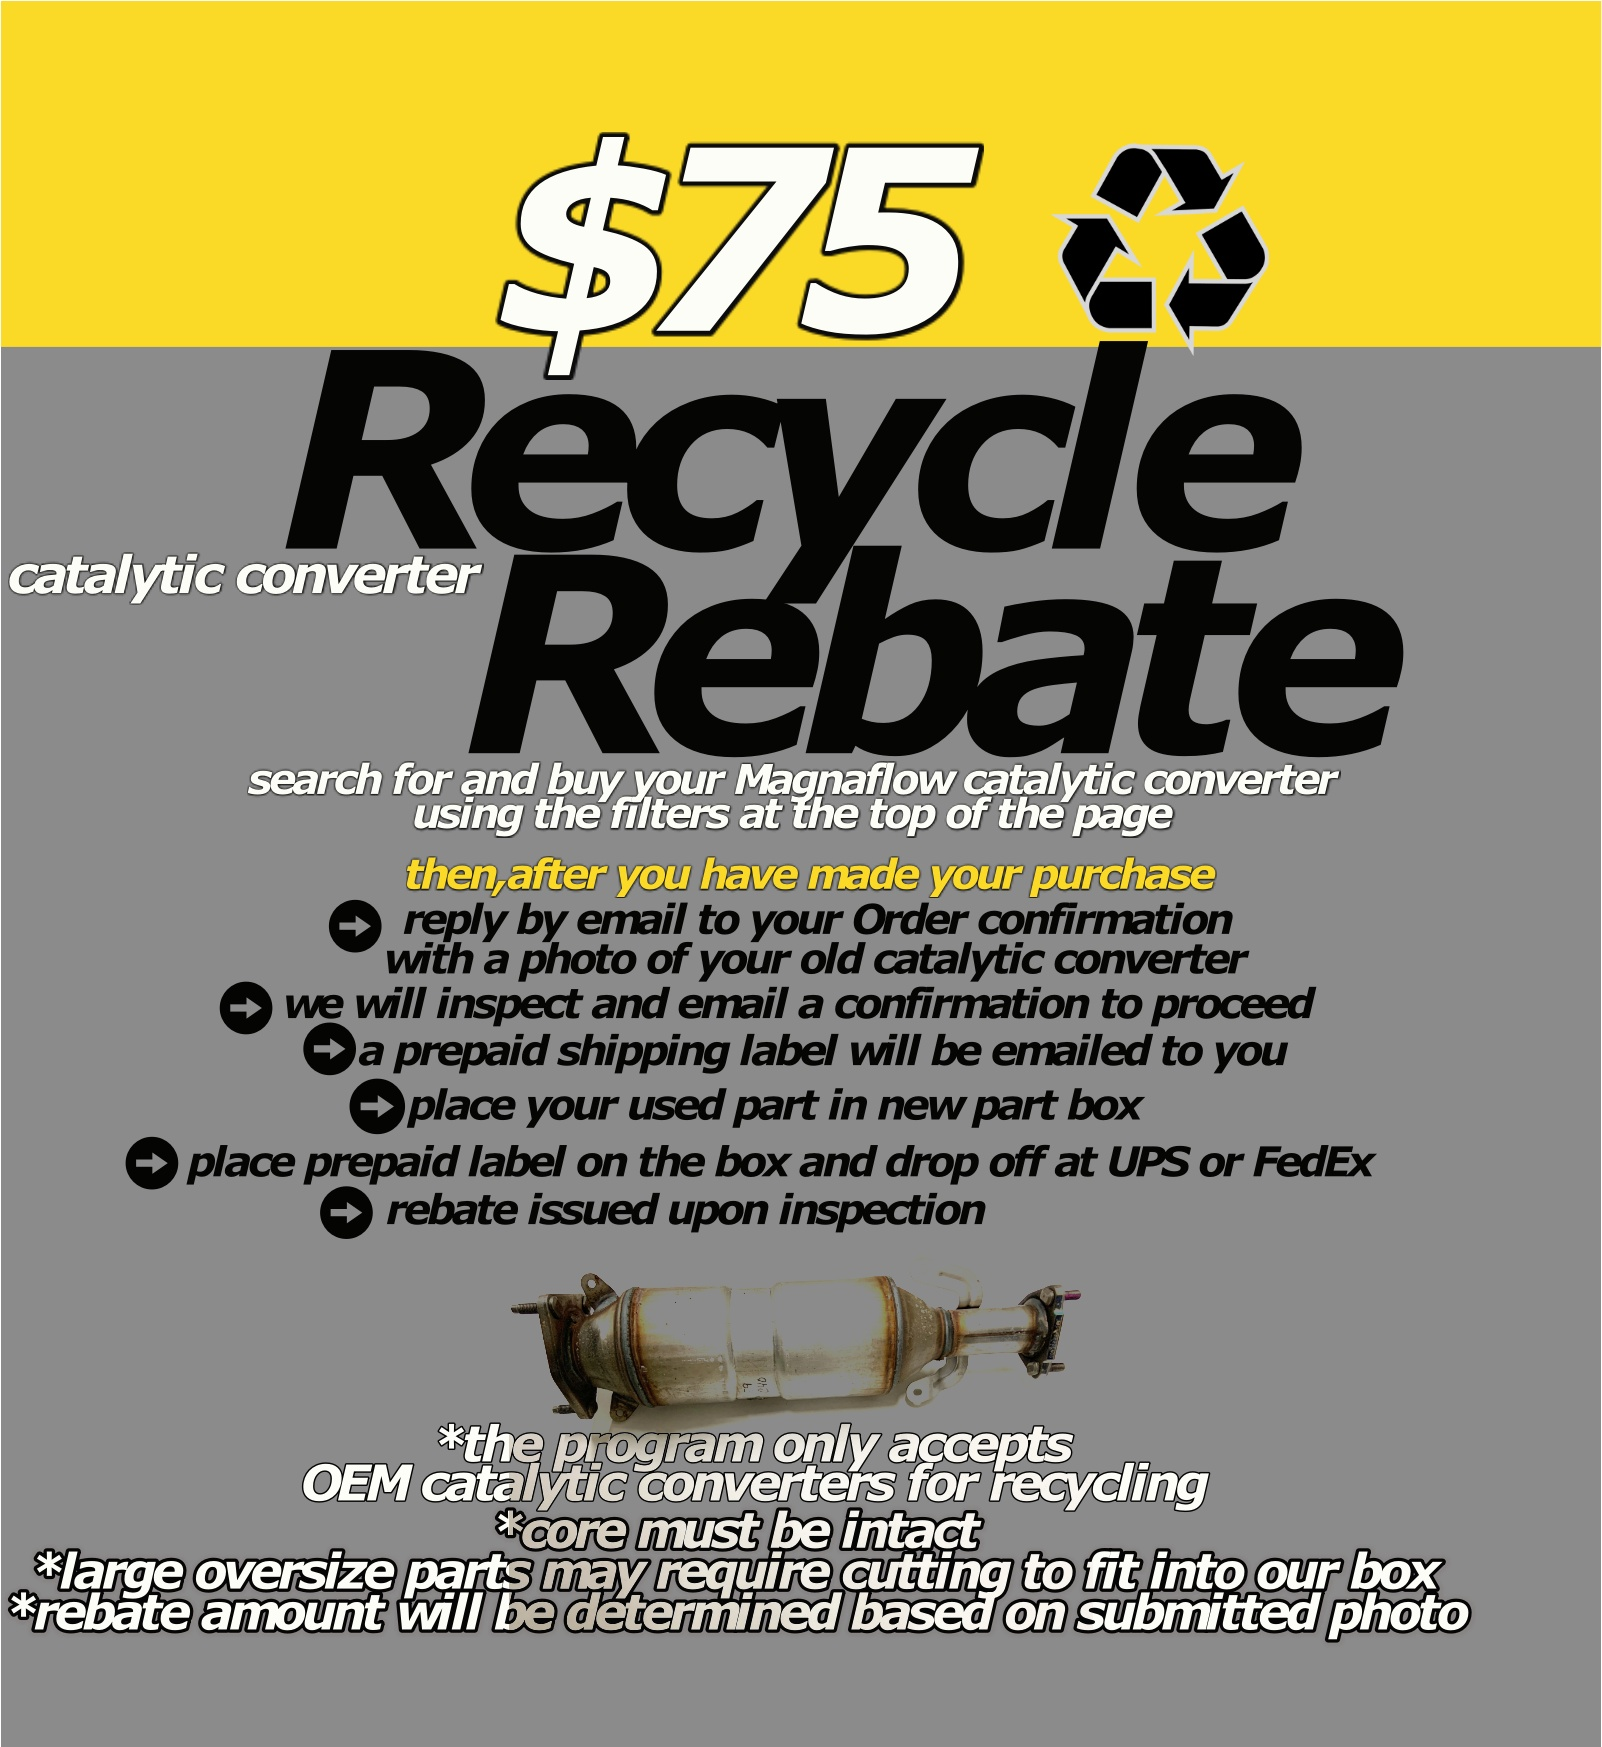 $75+ catalytic converter recycling rebate search for and buy your Magnaflow catalytic converter using the filters at the top of the page reply by email to your Order confirmation  with a photo of your old catalytic converter we will inspect and email a confirmation to proceed place your used part in new part box  *core must be intact *large oversize parts may require cutting to fit into our box *rebate amount will be determined based on submitted photo